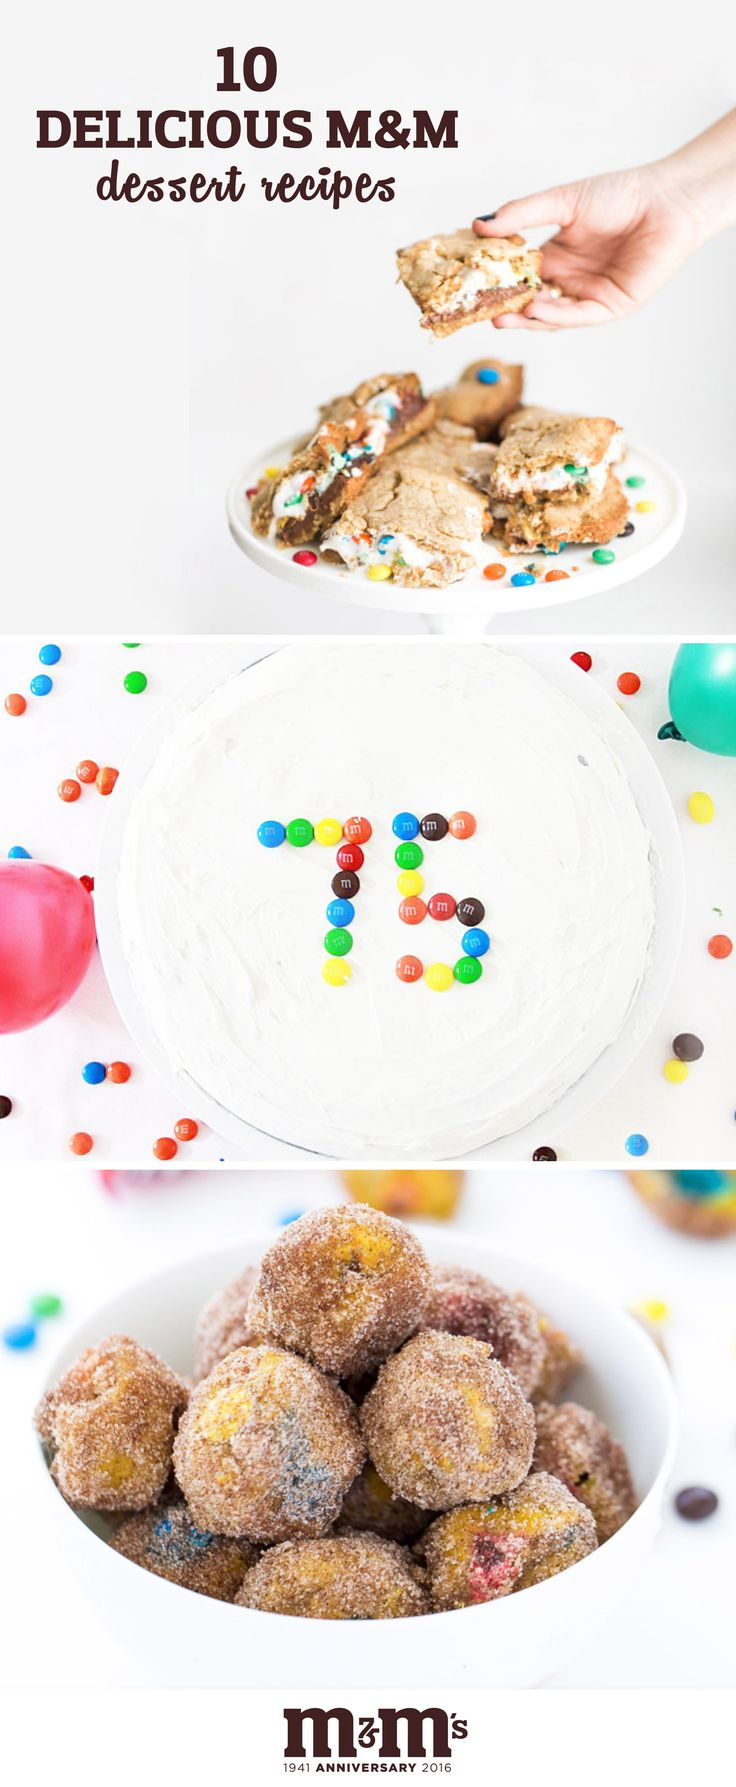 You name it, this collection of 10 Delicious M&M Dessert Recipes will have it! You'll find easy back-to-school homemade granola bars, pumpkin spice donut bites, s'mores cookie bars, and more when you check out these sweet treats using M&M's. Perfect for celebrating fall and putting a smile on your family's face! Plus, find everything you need to makes these at your local Kroger.